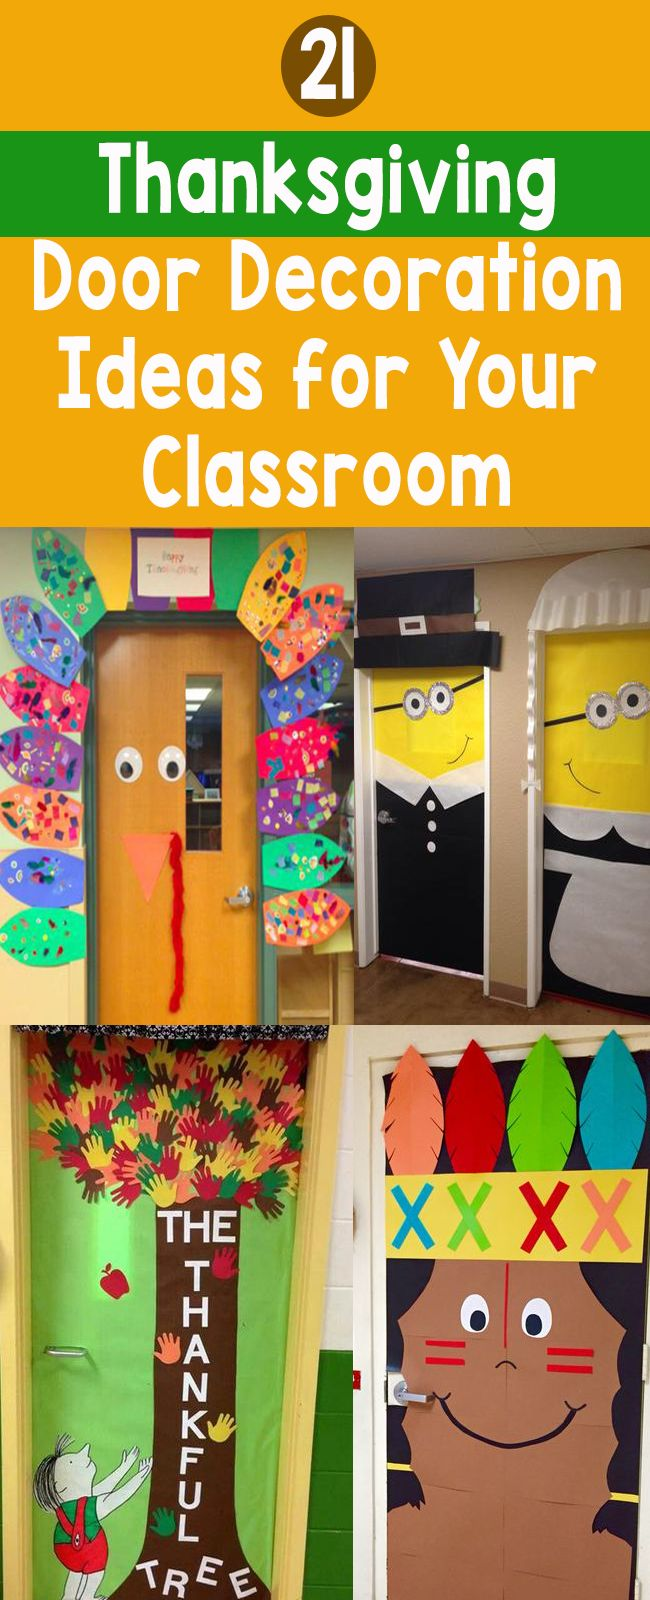 21 Thanksgiving Door Decoration Ideas for Your Classroom – Bored Teachers